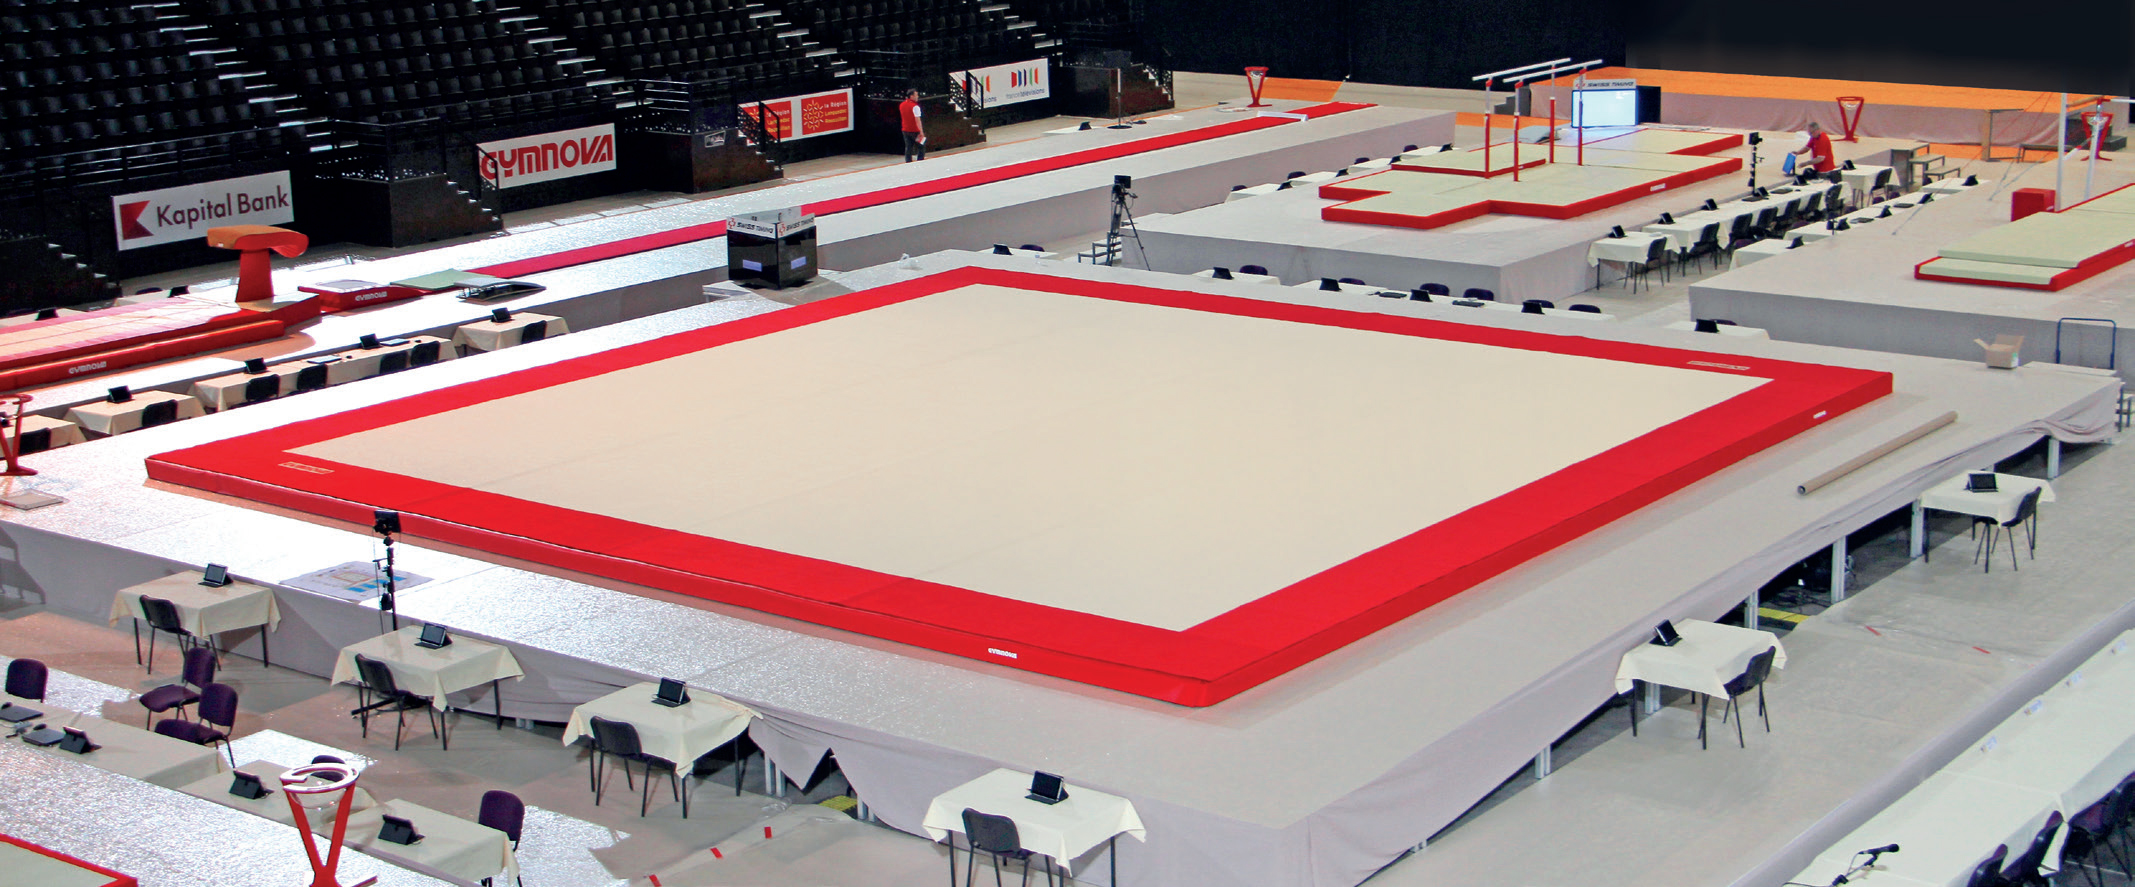 "MONTREAL"" COMPETITION SPRING EXERCISE FLOOR WITH OVERLAY CARPET (SPRINGS NOT ASSEMBLED) - 14 x 14 m (*) - FIG Approved"